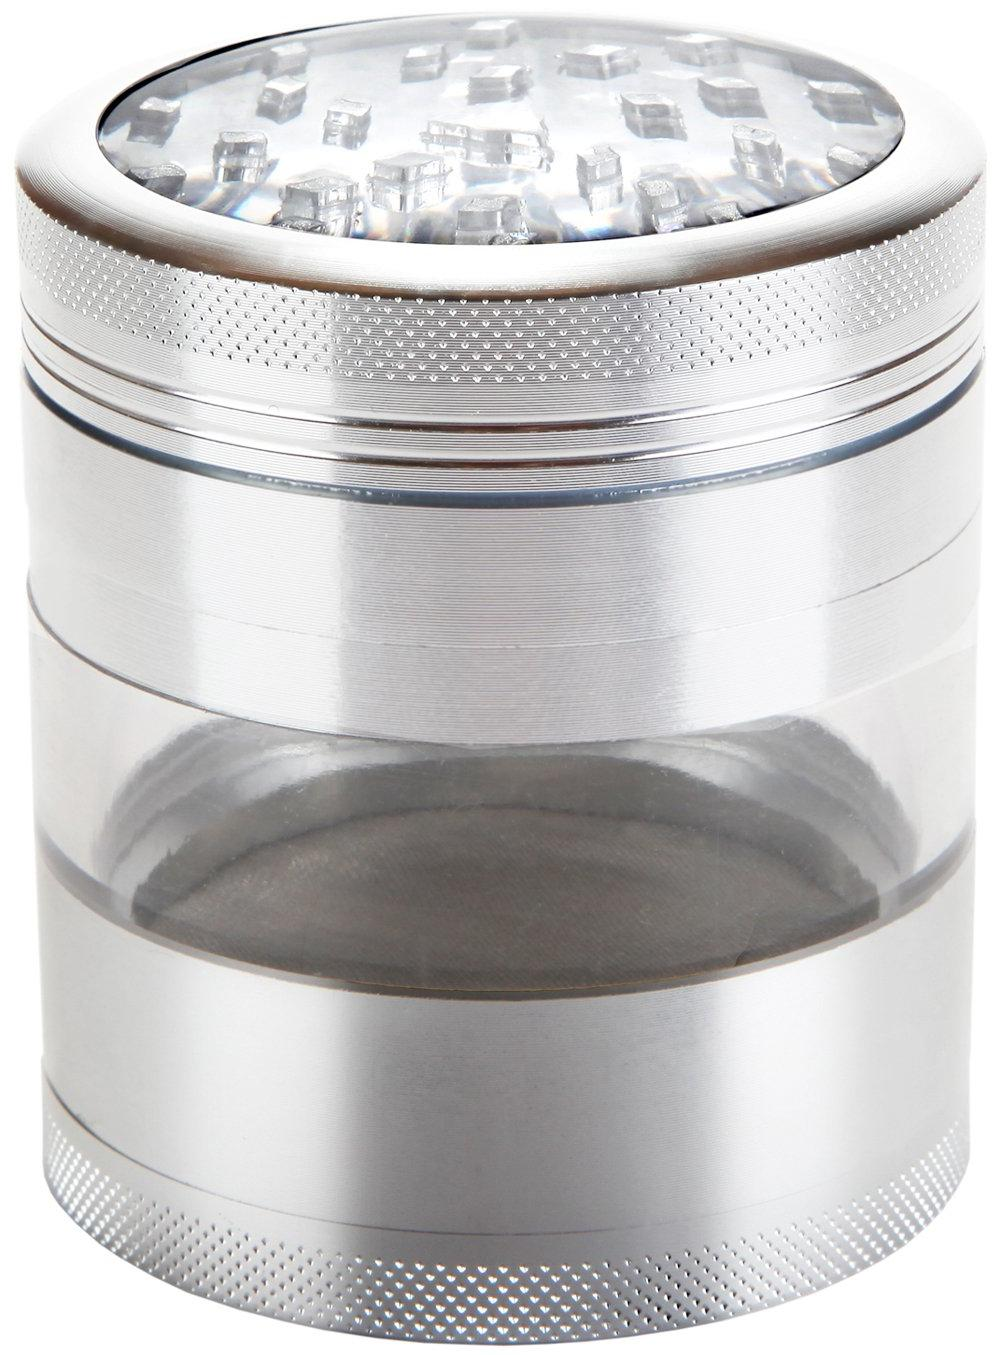 Zip Grinders - Pagoda Tower Spice and Herb Grinder -